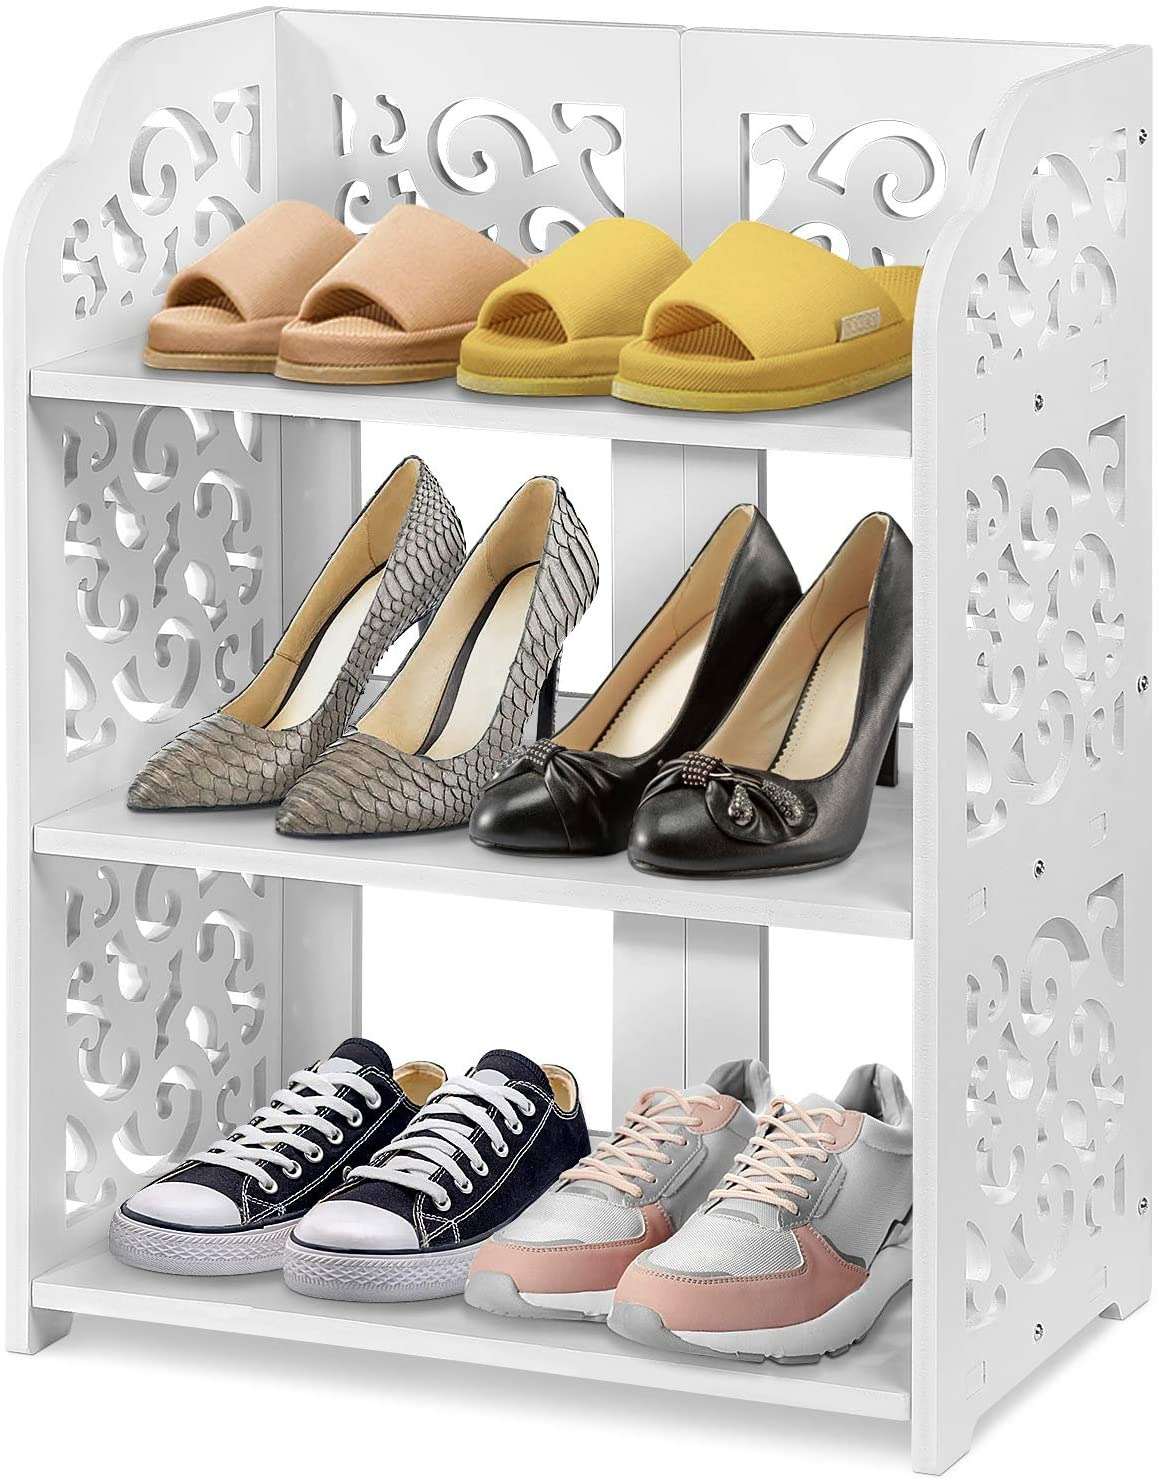 Shoe Regular dealer Cabinet Rack Space Selling and selling Saving White with Hollow Chic